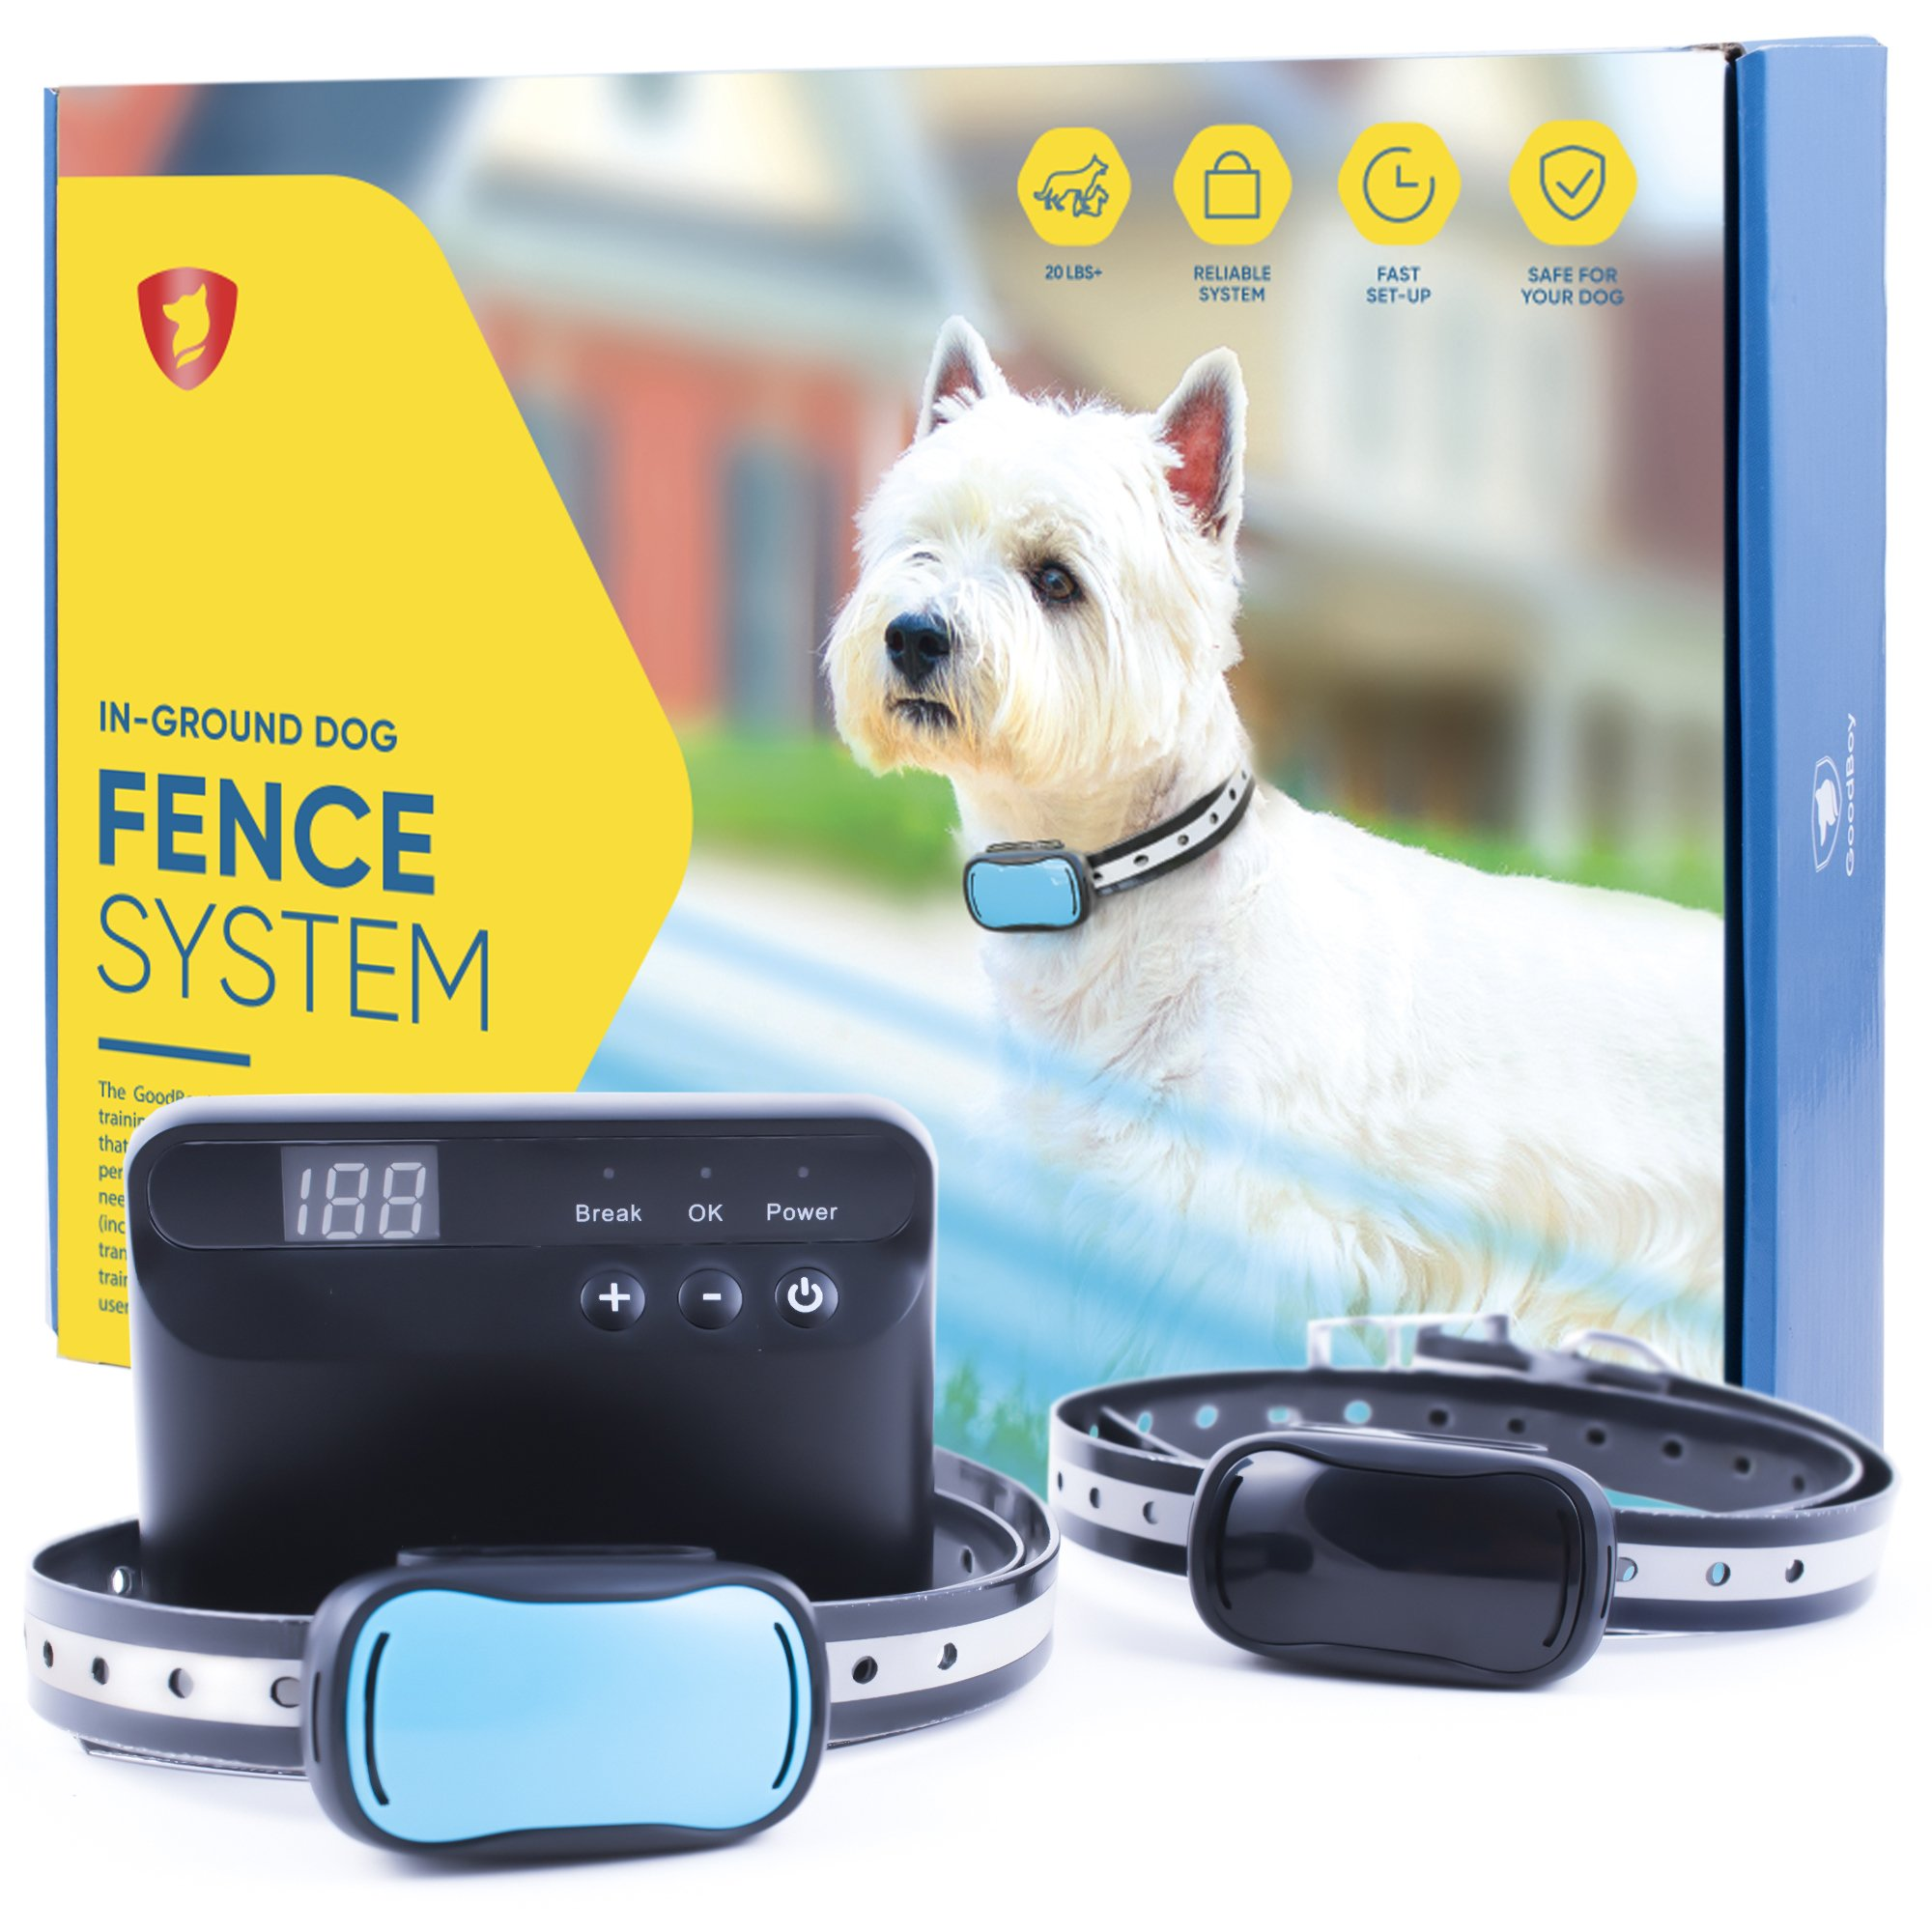 GoodBoy Electric In-Ground Dog Fence - Wireless Invisible Perimeter System with 2 Collars - Best for Safe Hands-Off Dogs and Pets Containment (20+ lbs)